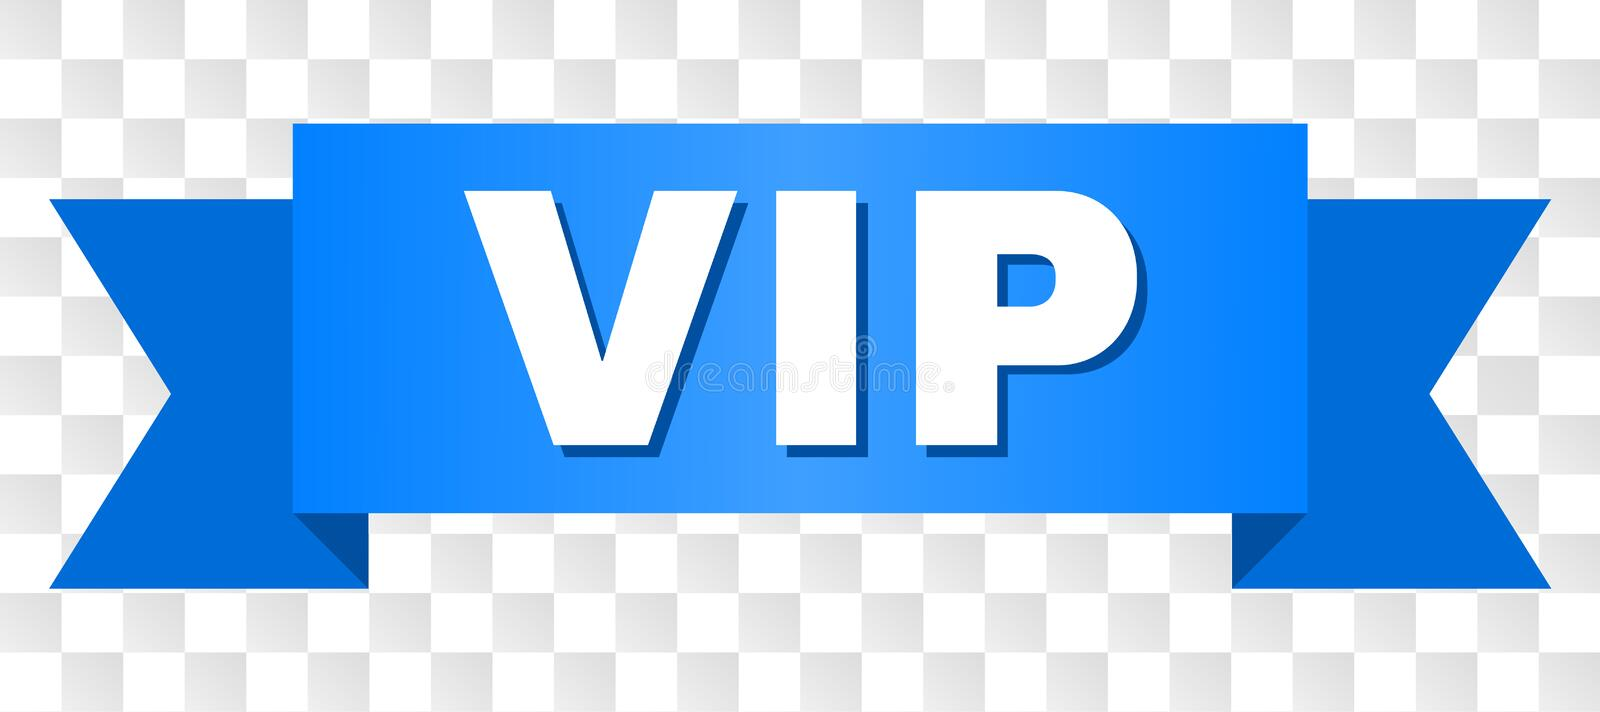 Blue Stripe with VIP Caption. VIP text on a ribbon. Designed with white title and blue stripe. Vector banner with VIP tag on a transparent background royalty free illustration